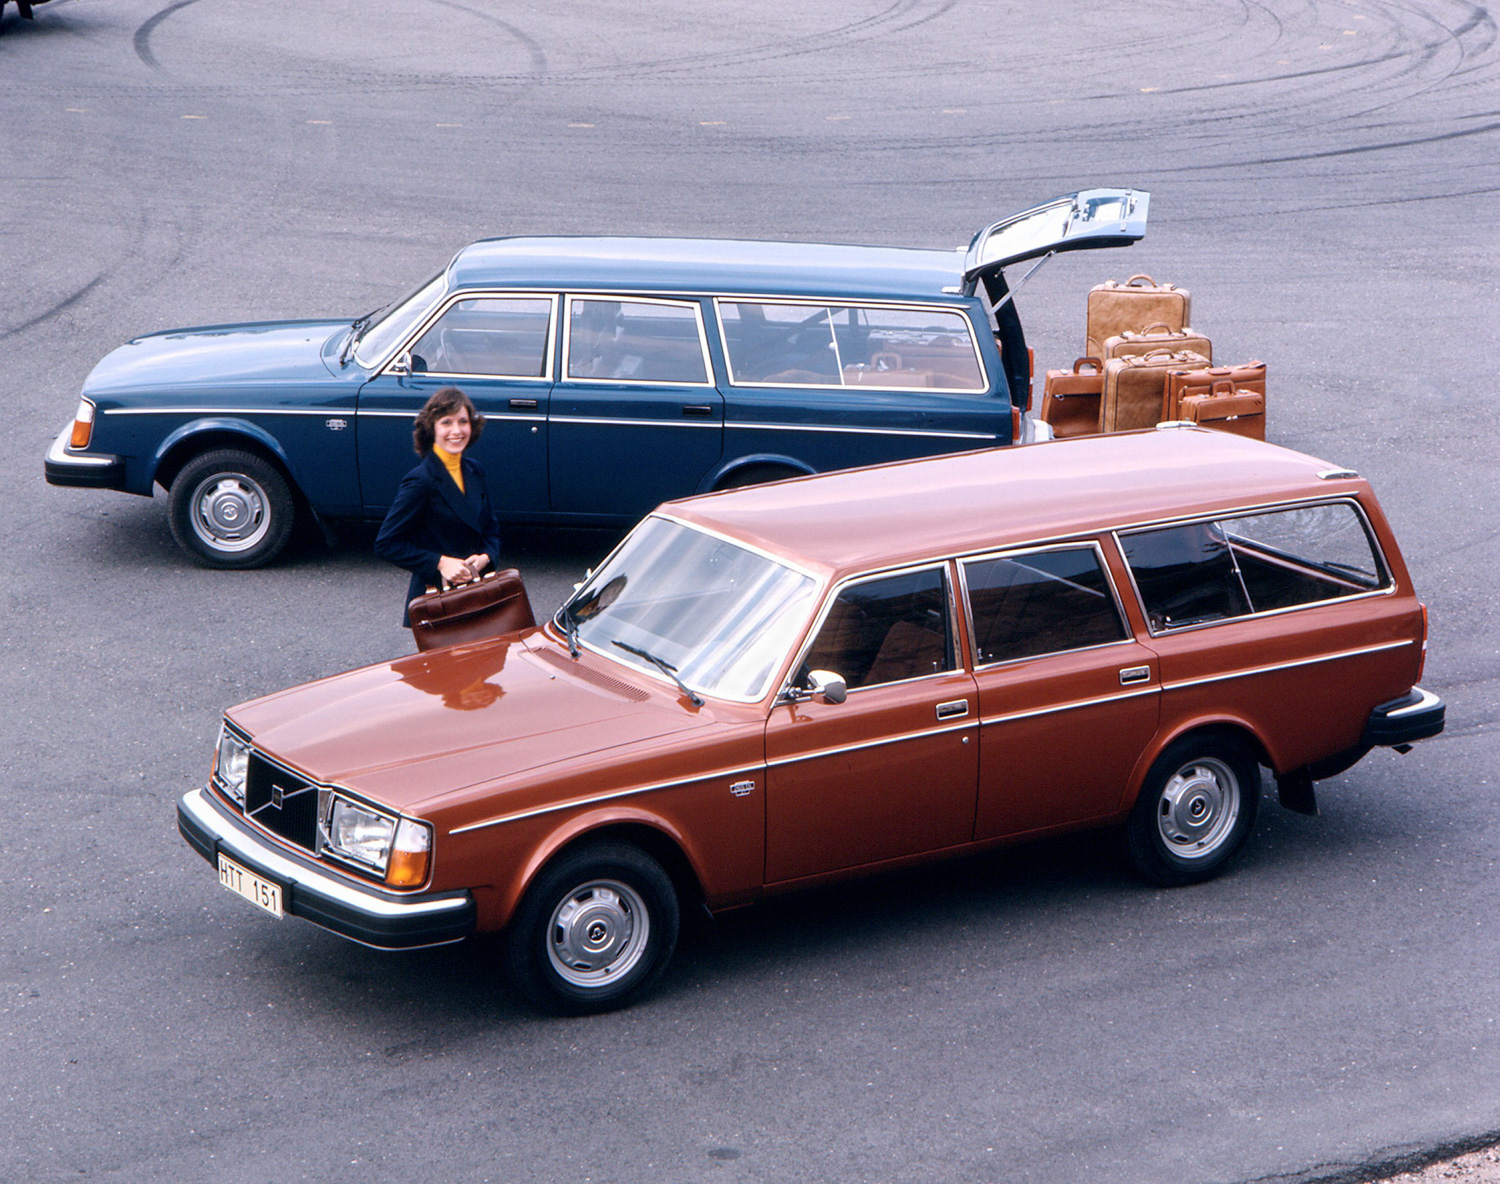 Volvo 245 DL suitcases brown and blue